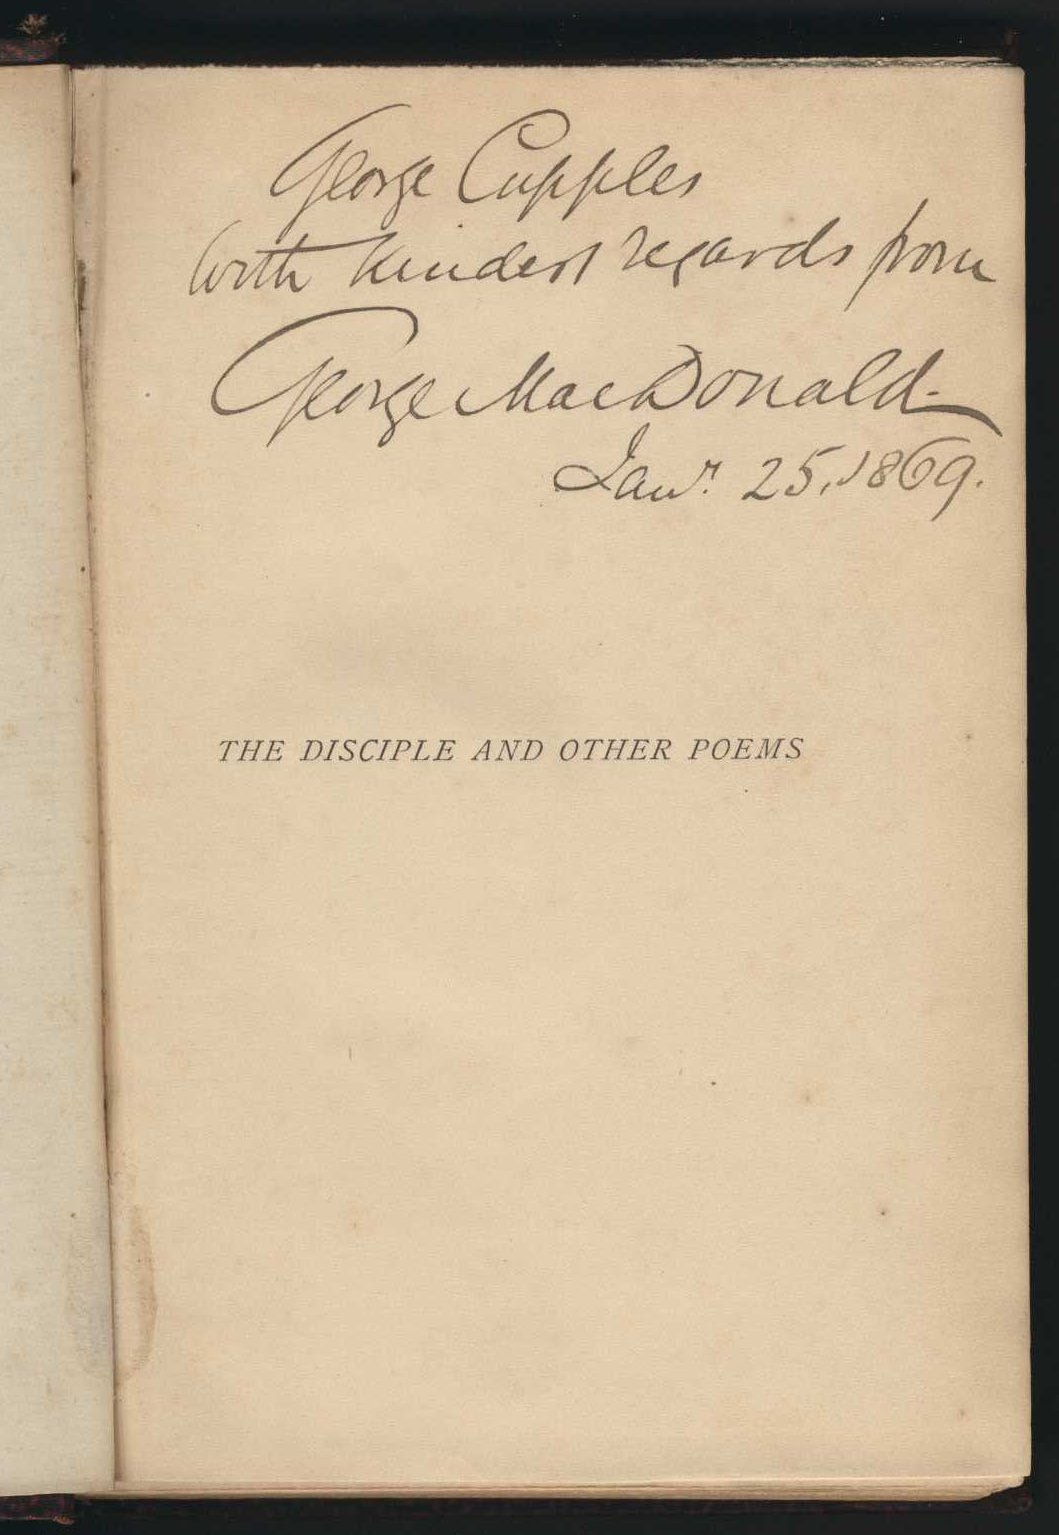 George MacDonald. The disciple and other poems. London: Strahan, 1868.